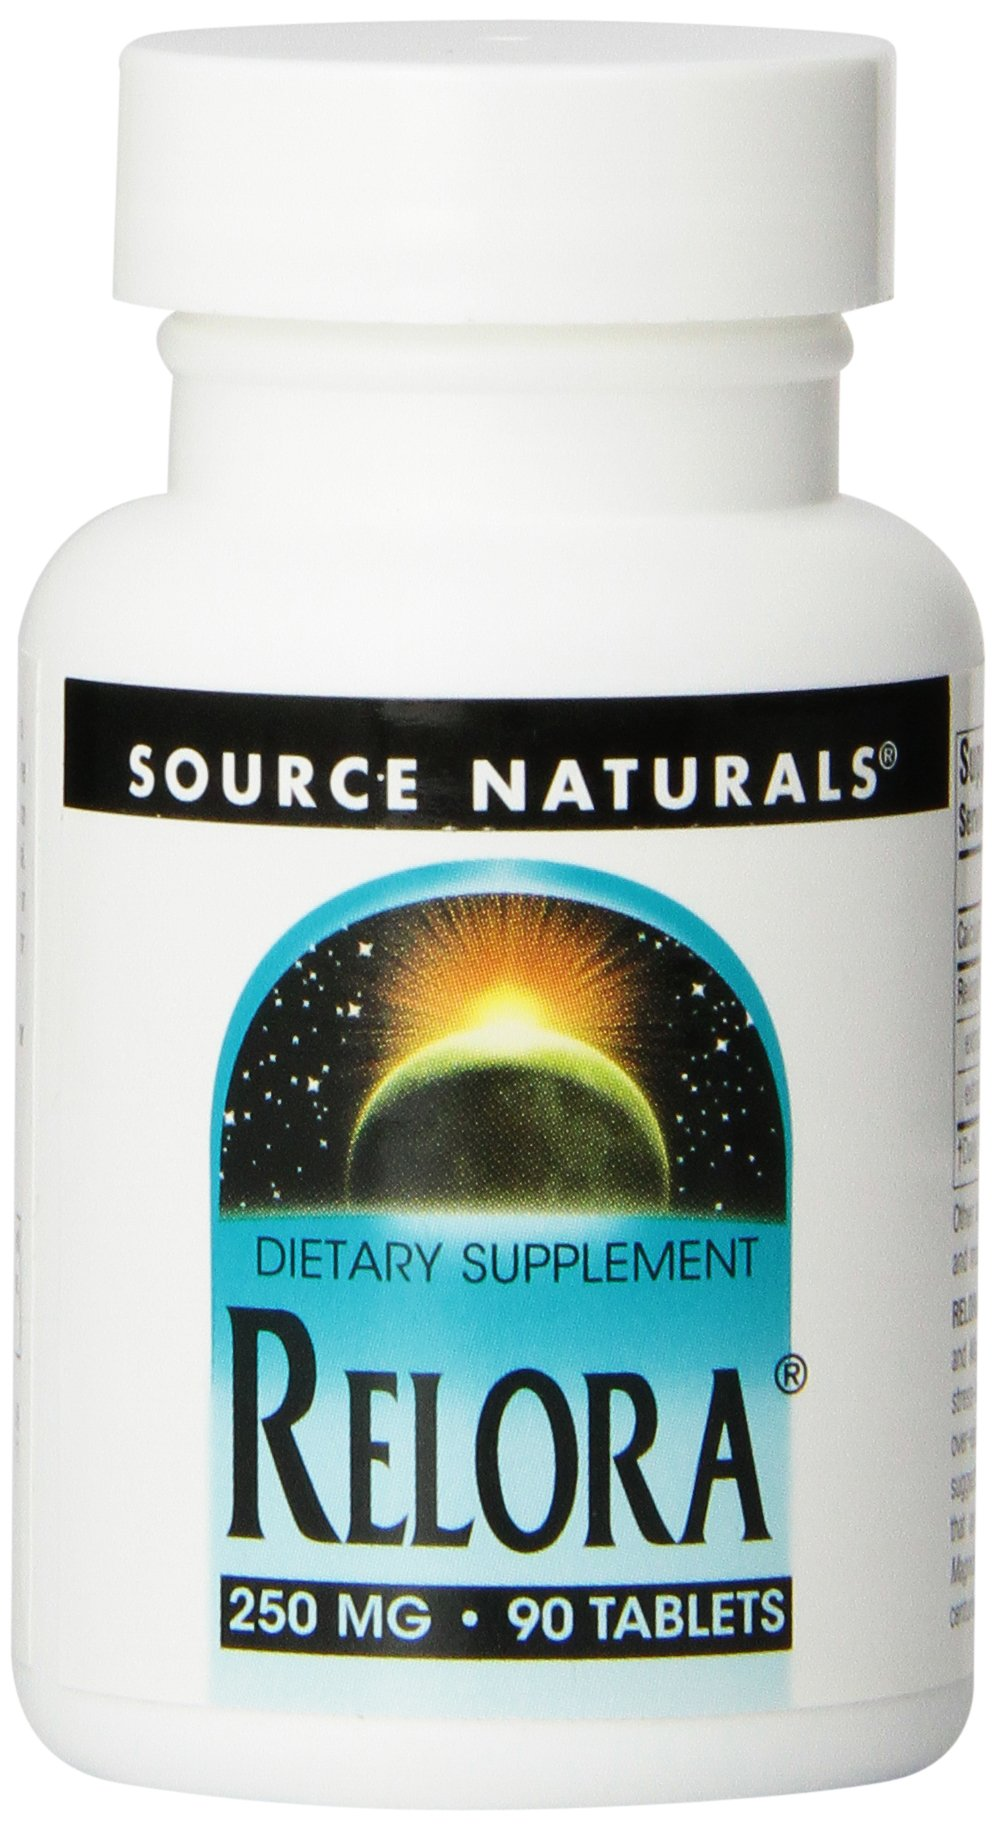 SOURCE NATURALS Relora 250 Mg Tablet, 90 Count